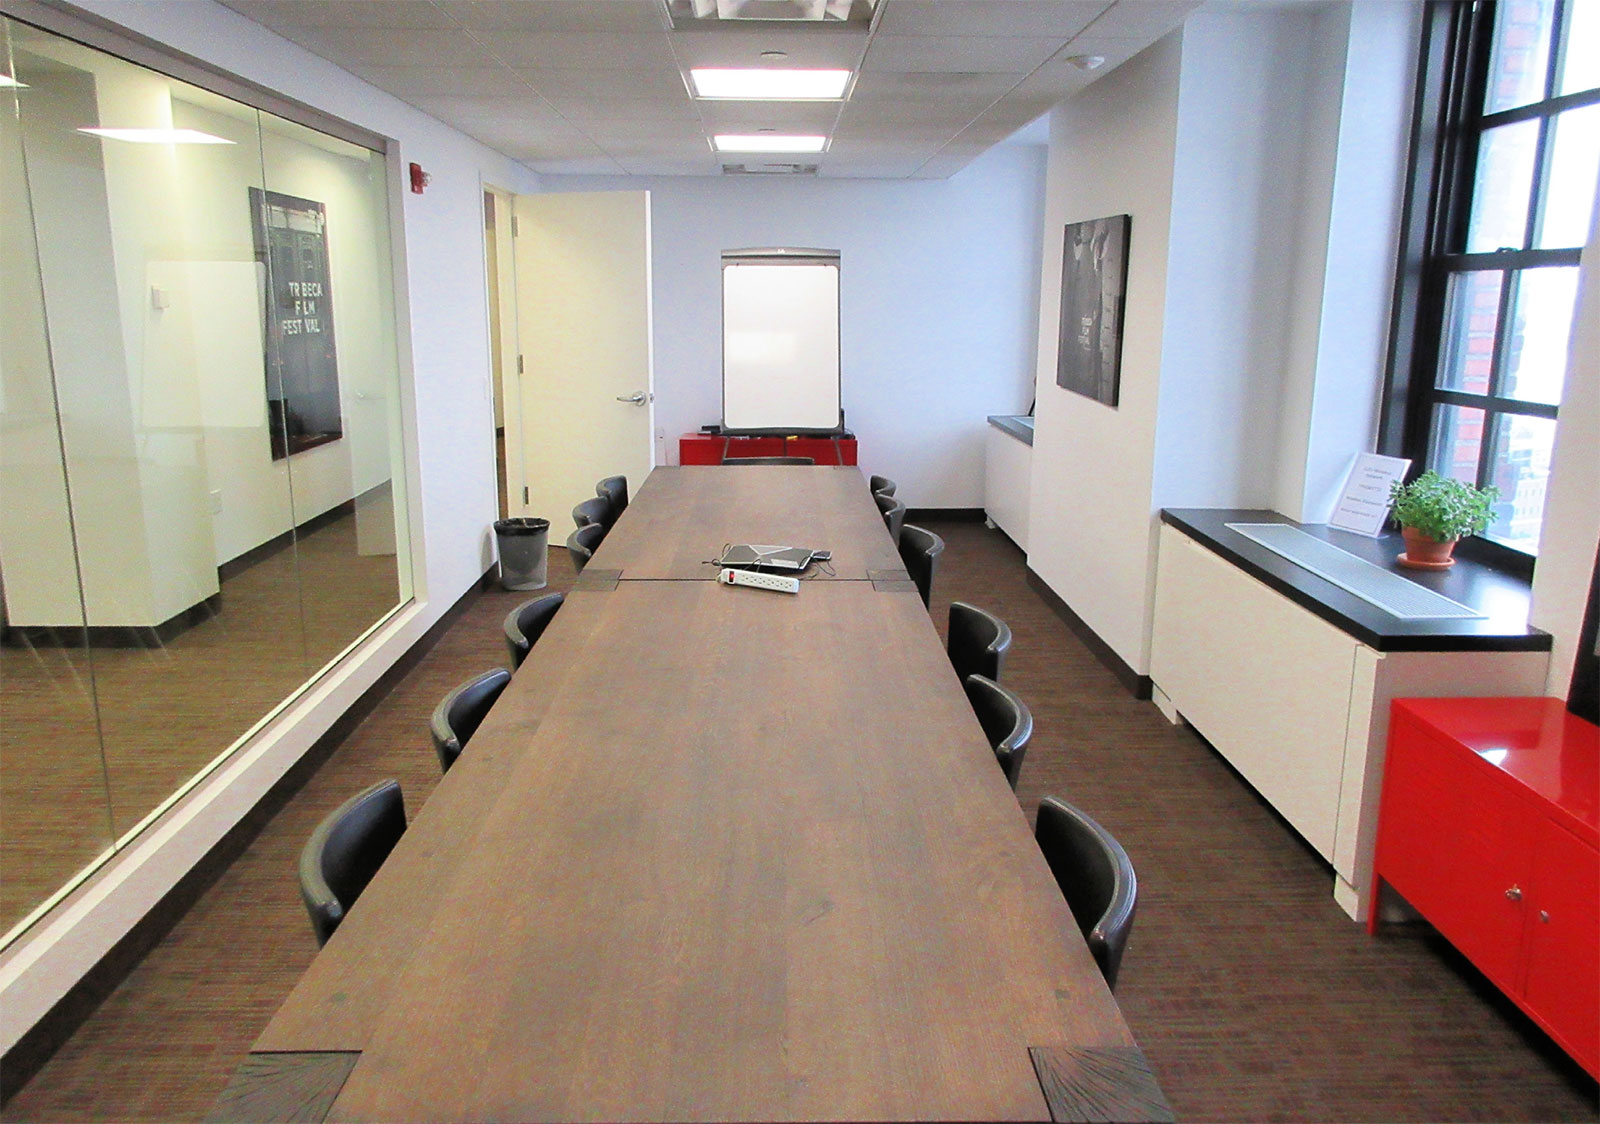 32-Avenue-Of-The-Americas-conference-room